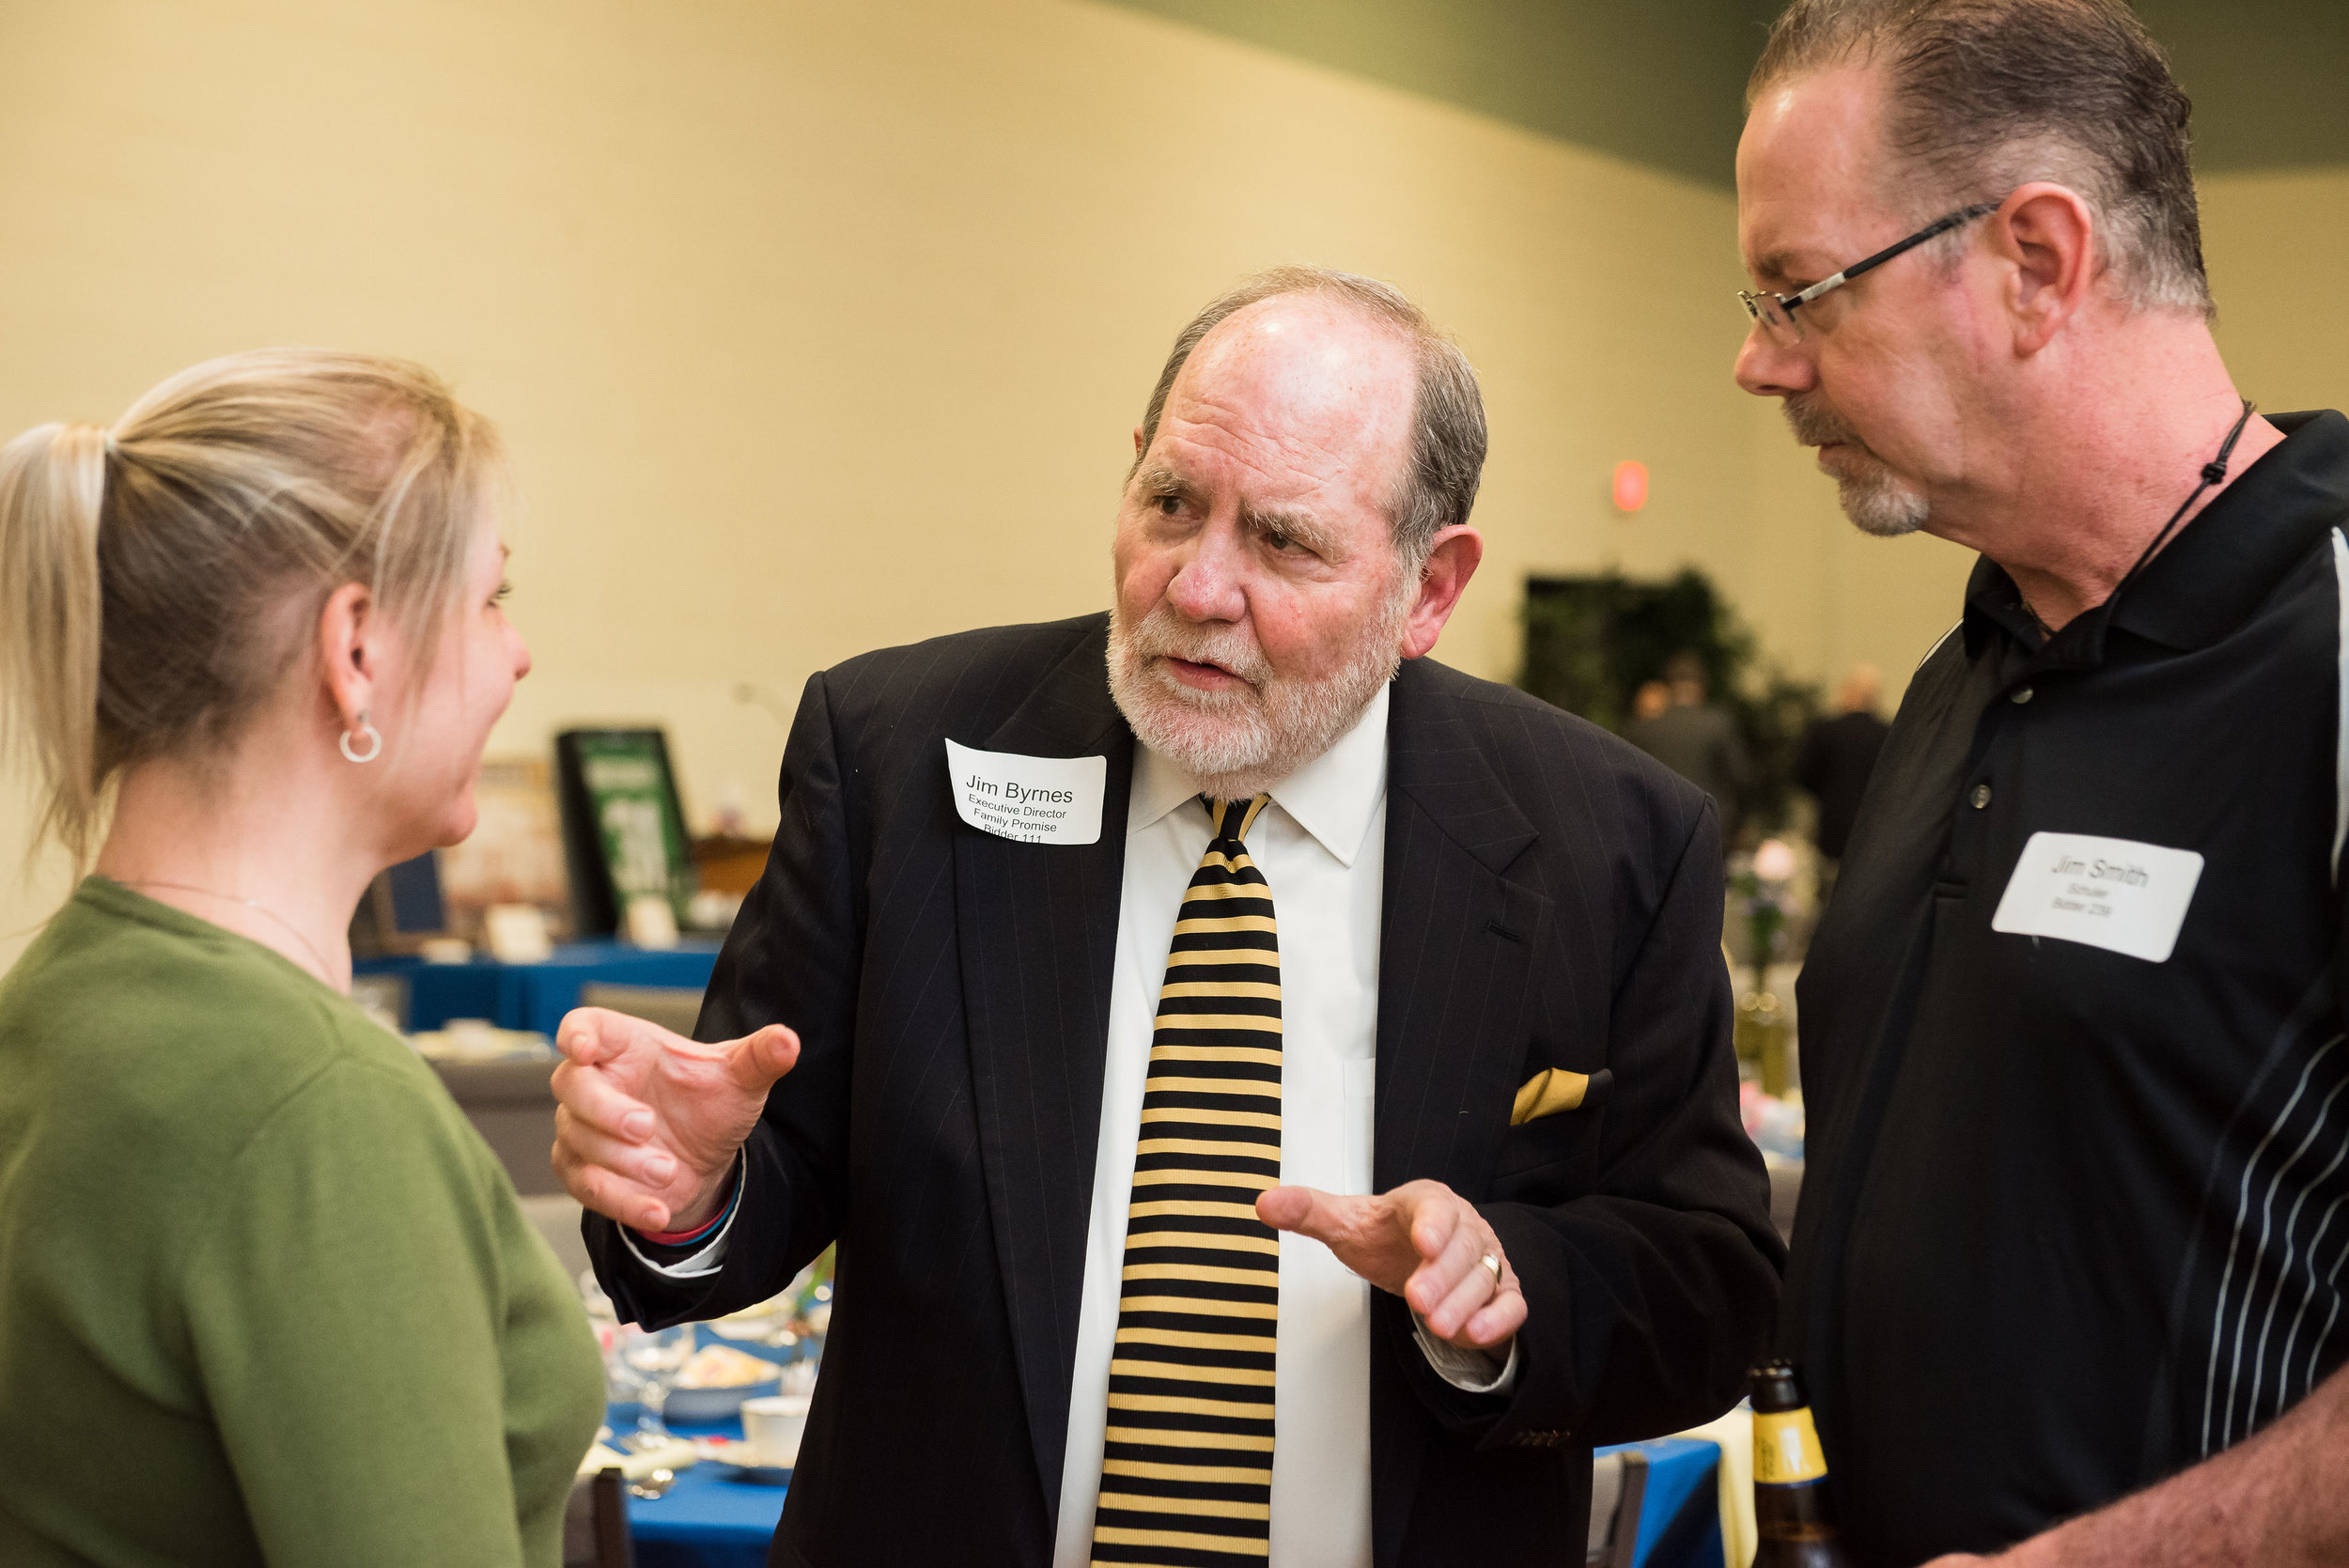 Jim Byrnes speaking with two guests at the 2019 Family Promise Homecoming Event in March 2019.